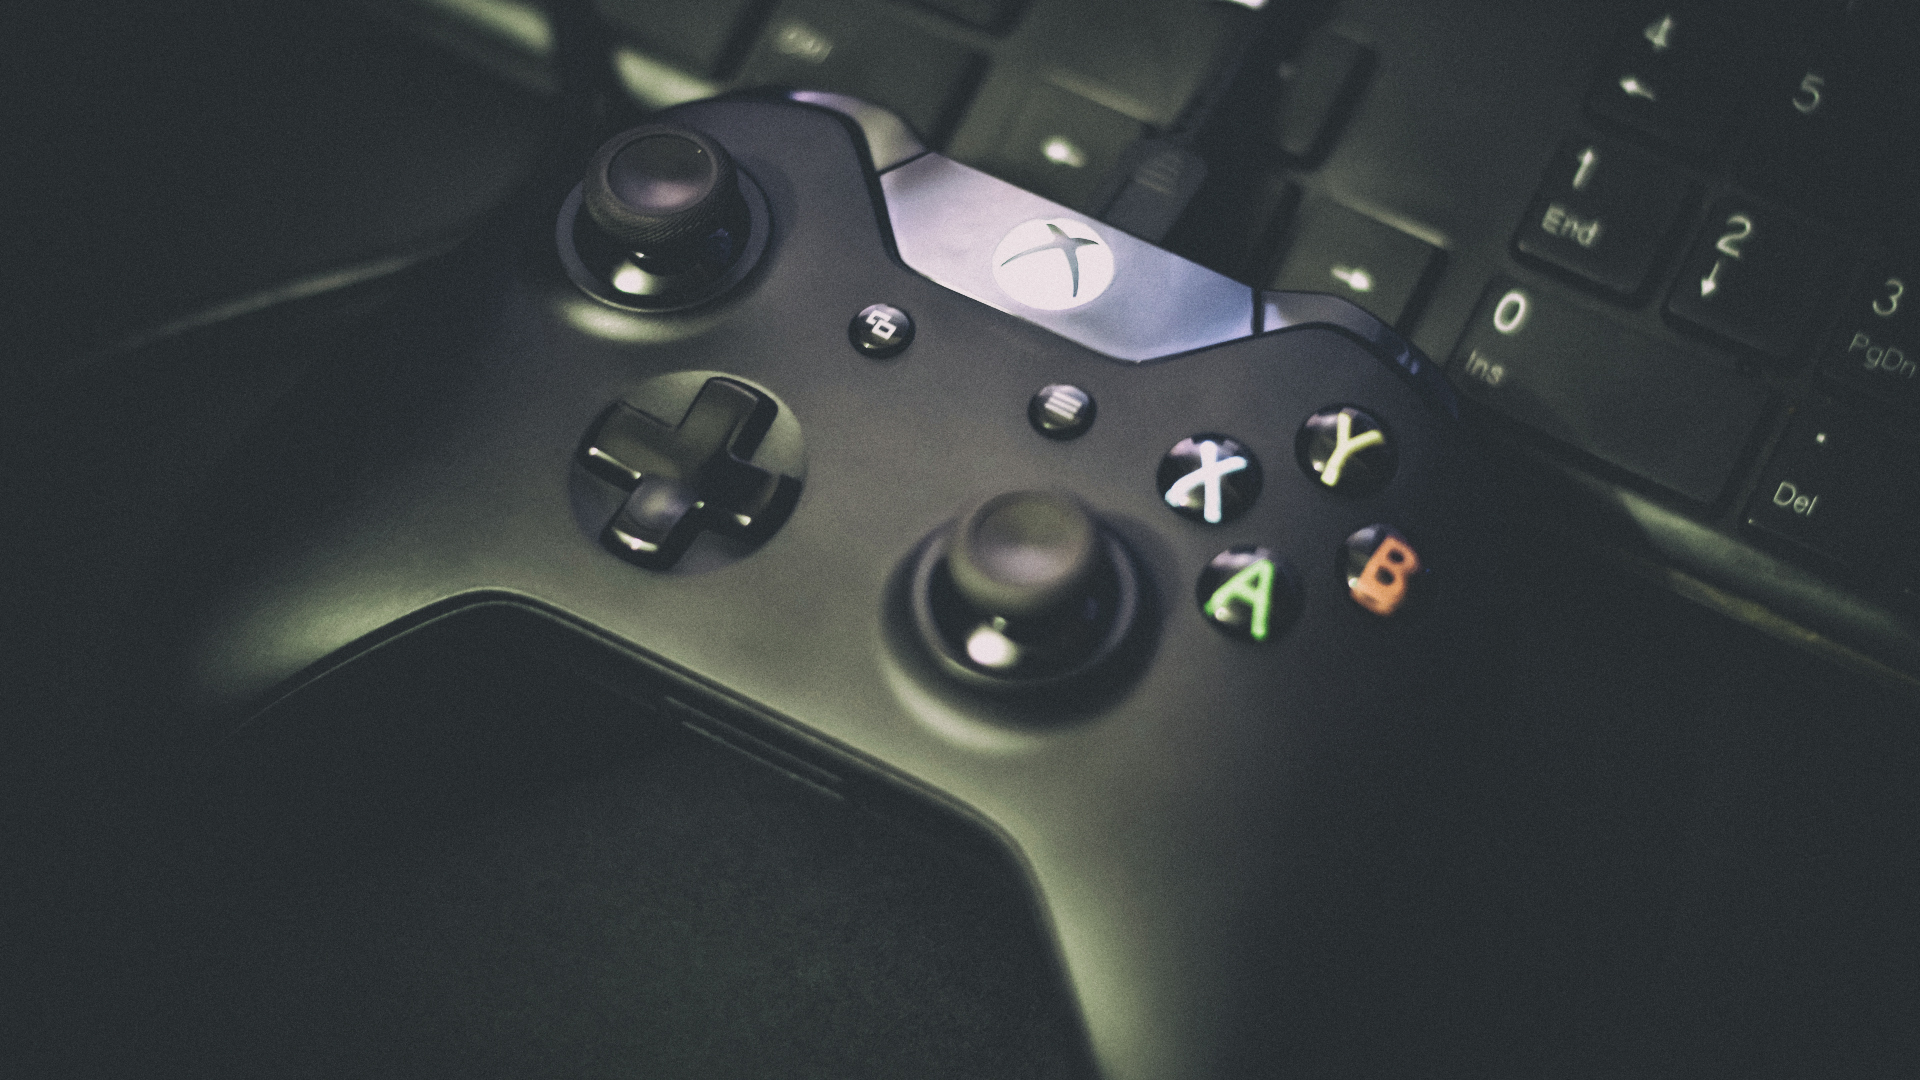 48 xbox one wallpaper 1920x1080 on wallpapersafari - Xbox one wallpaper 1920x1080 ...